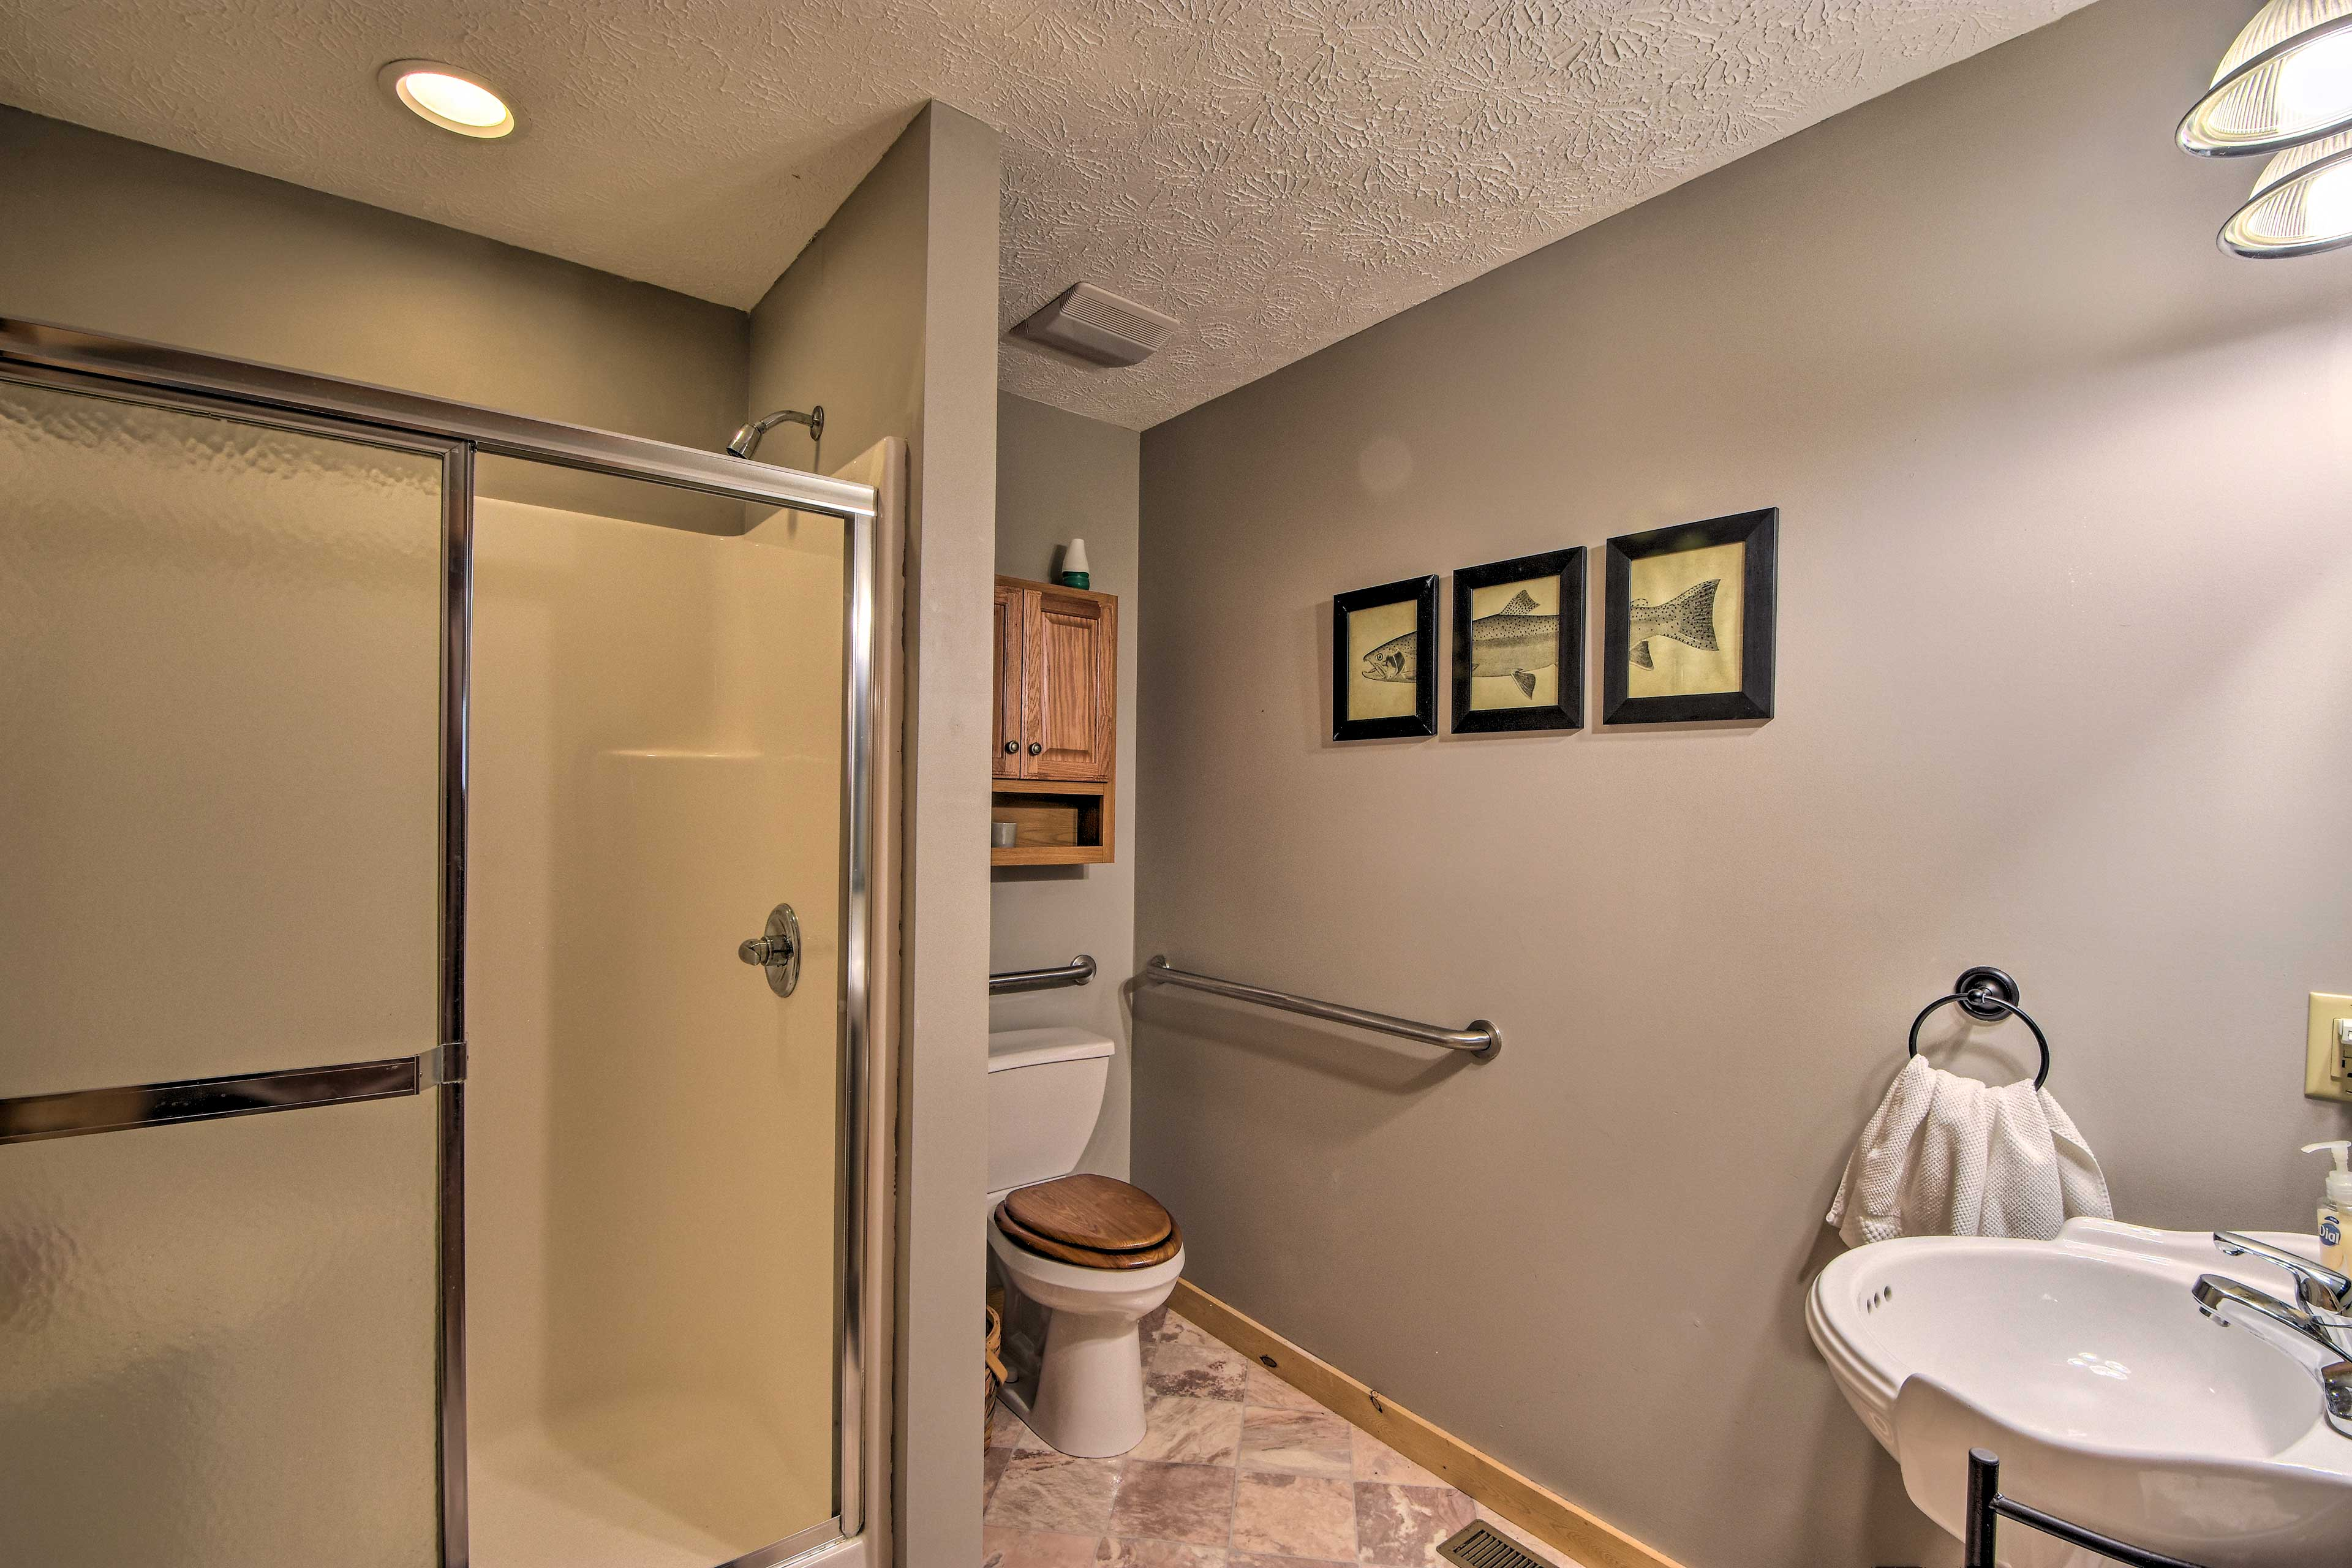 Rinse off in this full bathroom after your outdoor adventures.